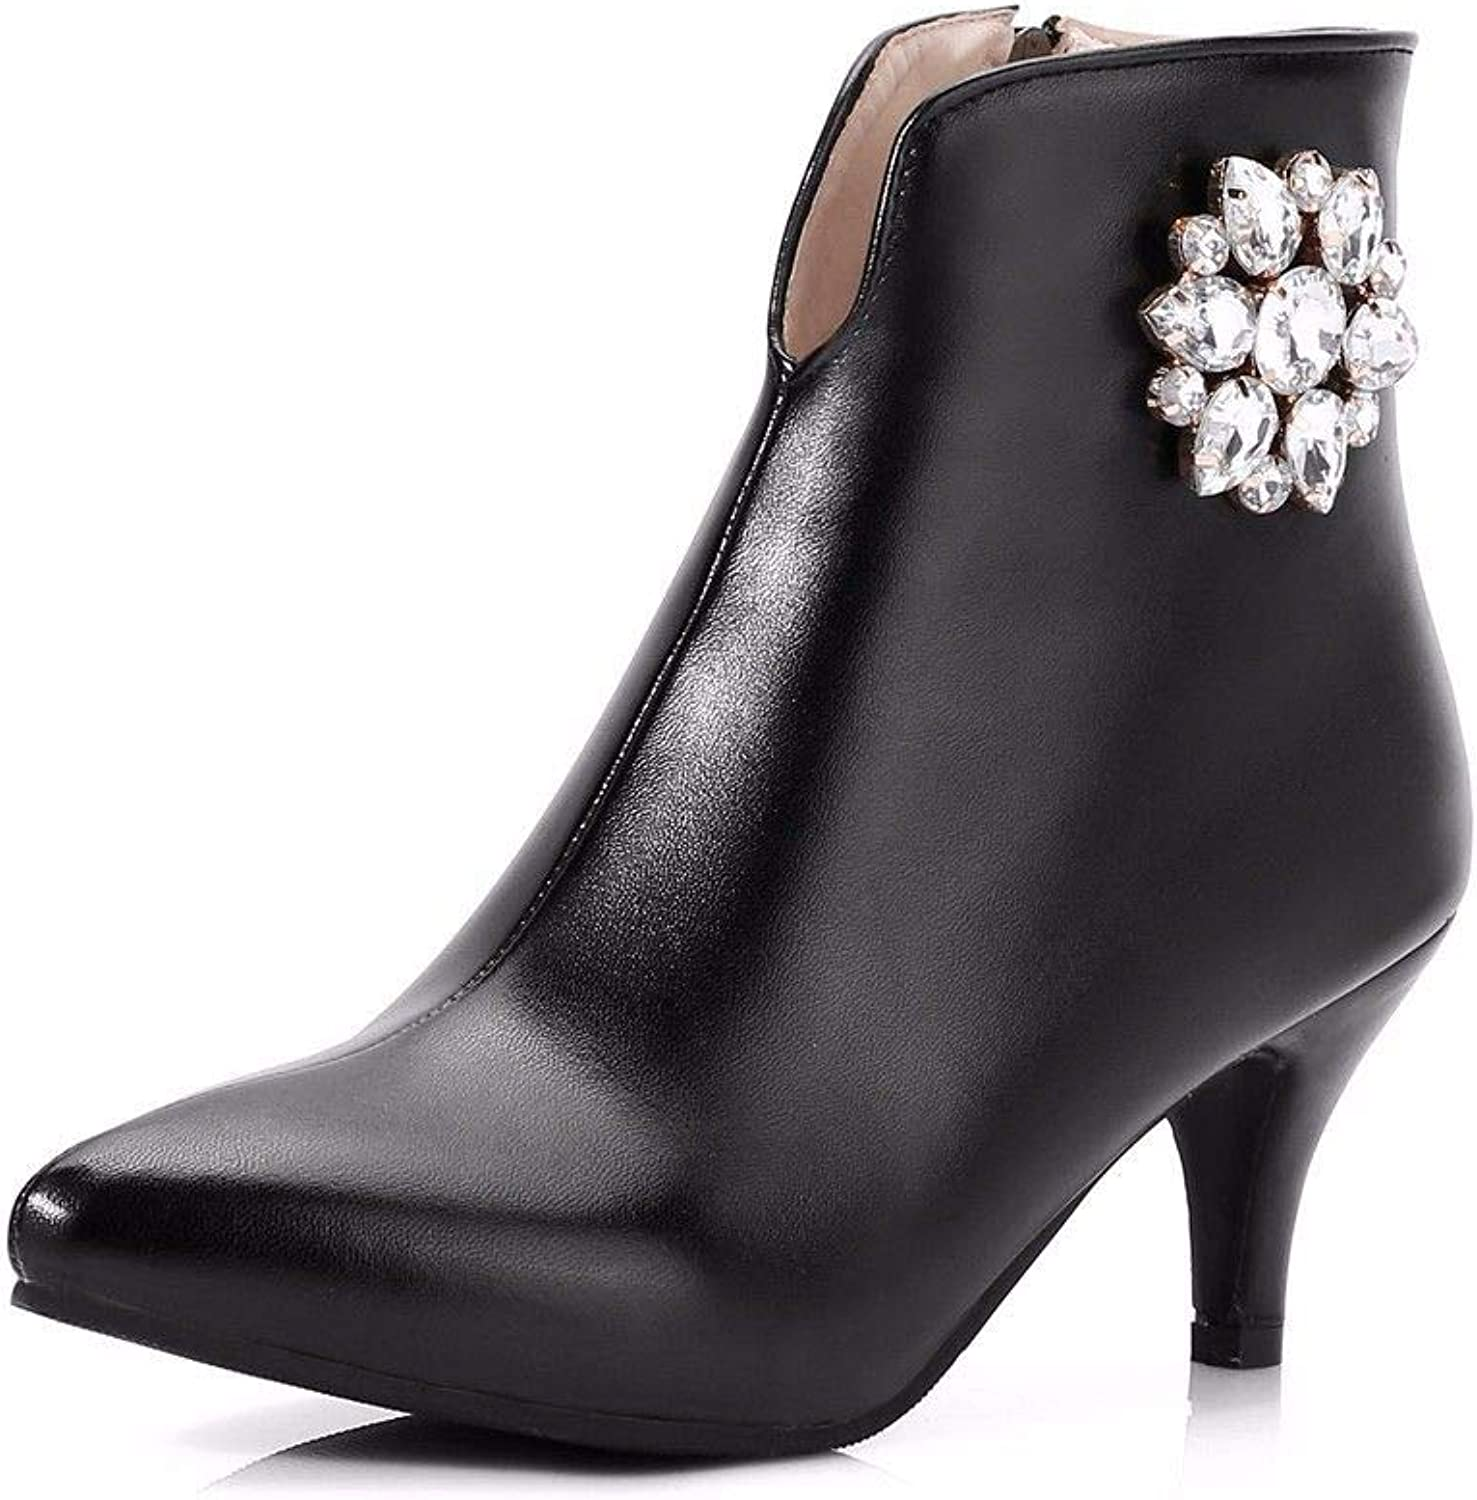 Autumn and Winter Female high-Heeled shoes Type Diamond Pointed Boots Size shoes